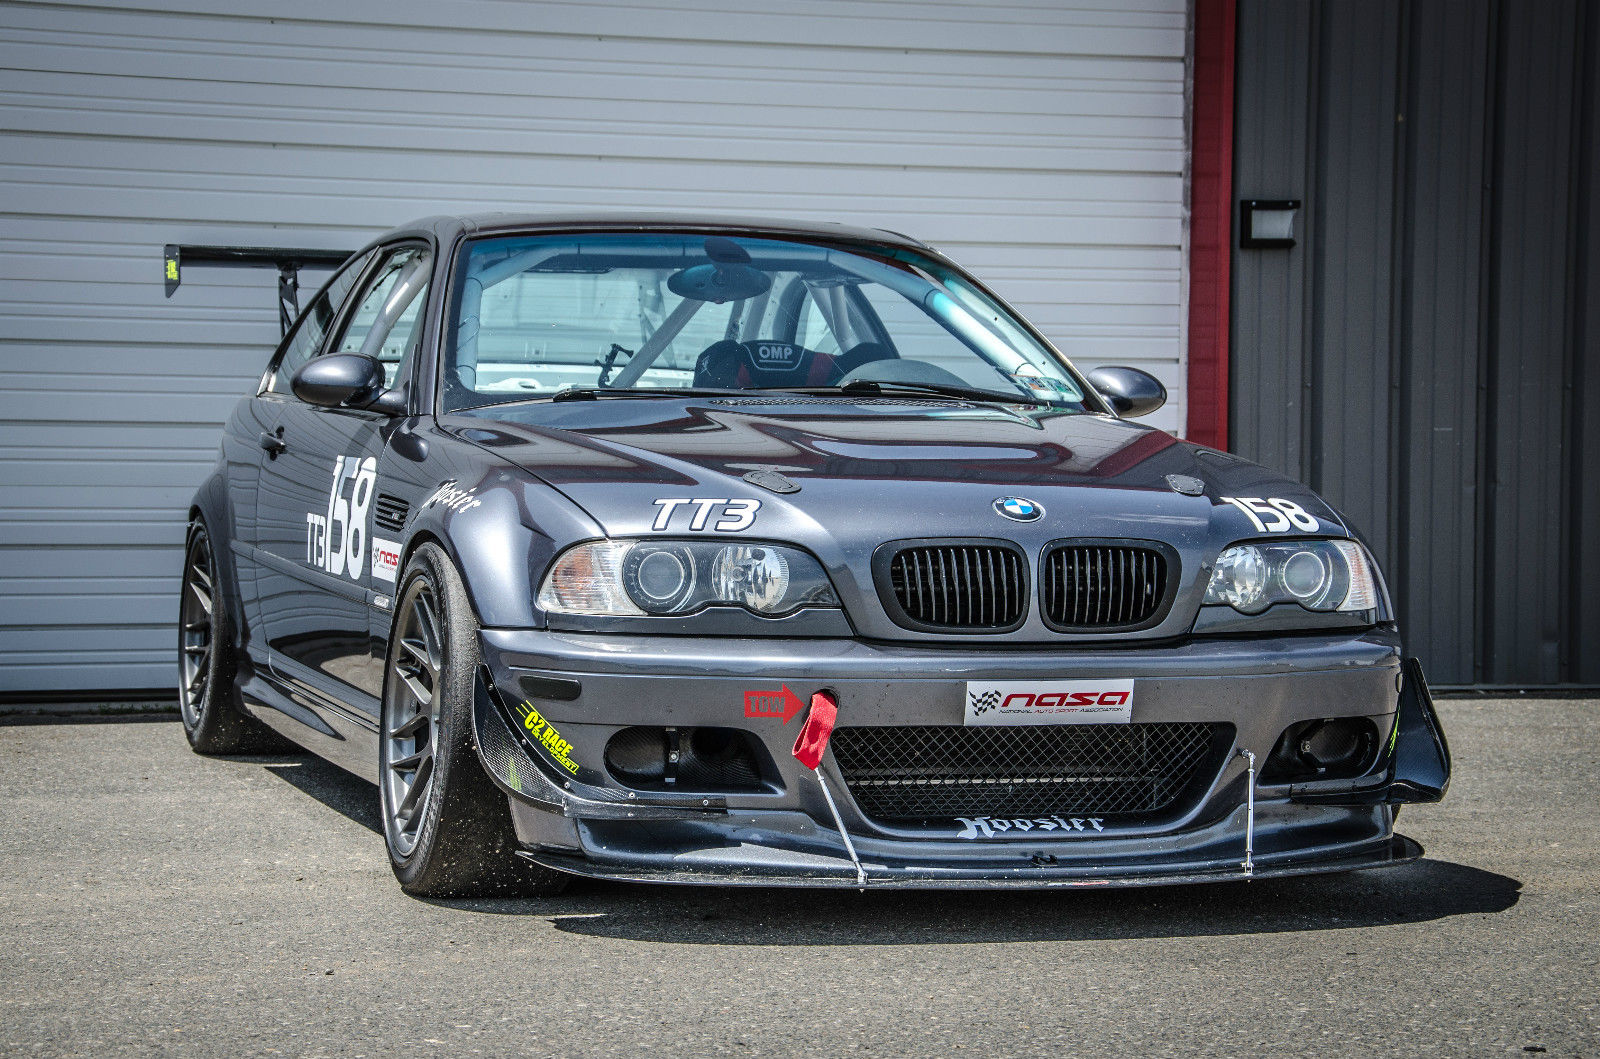 2002 bmw m3 race car for sale - Used bmw m3 coupe for sale ...